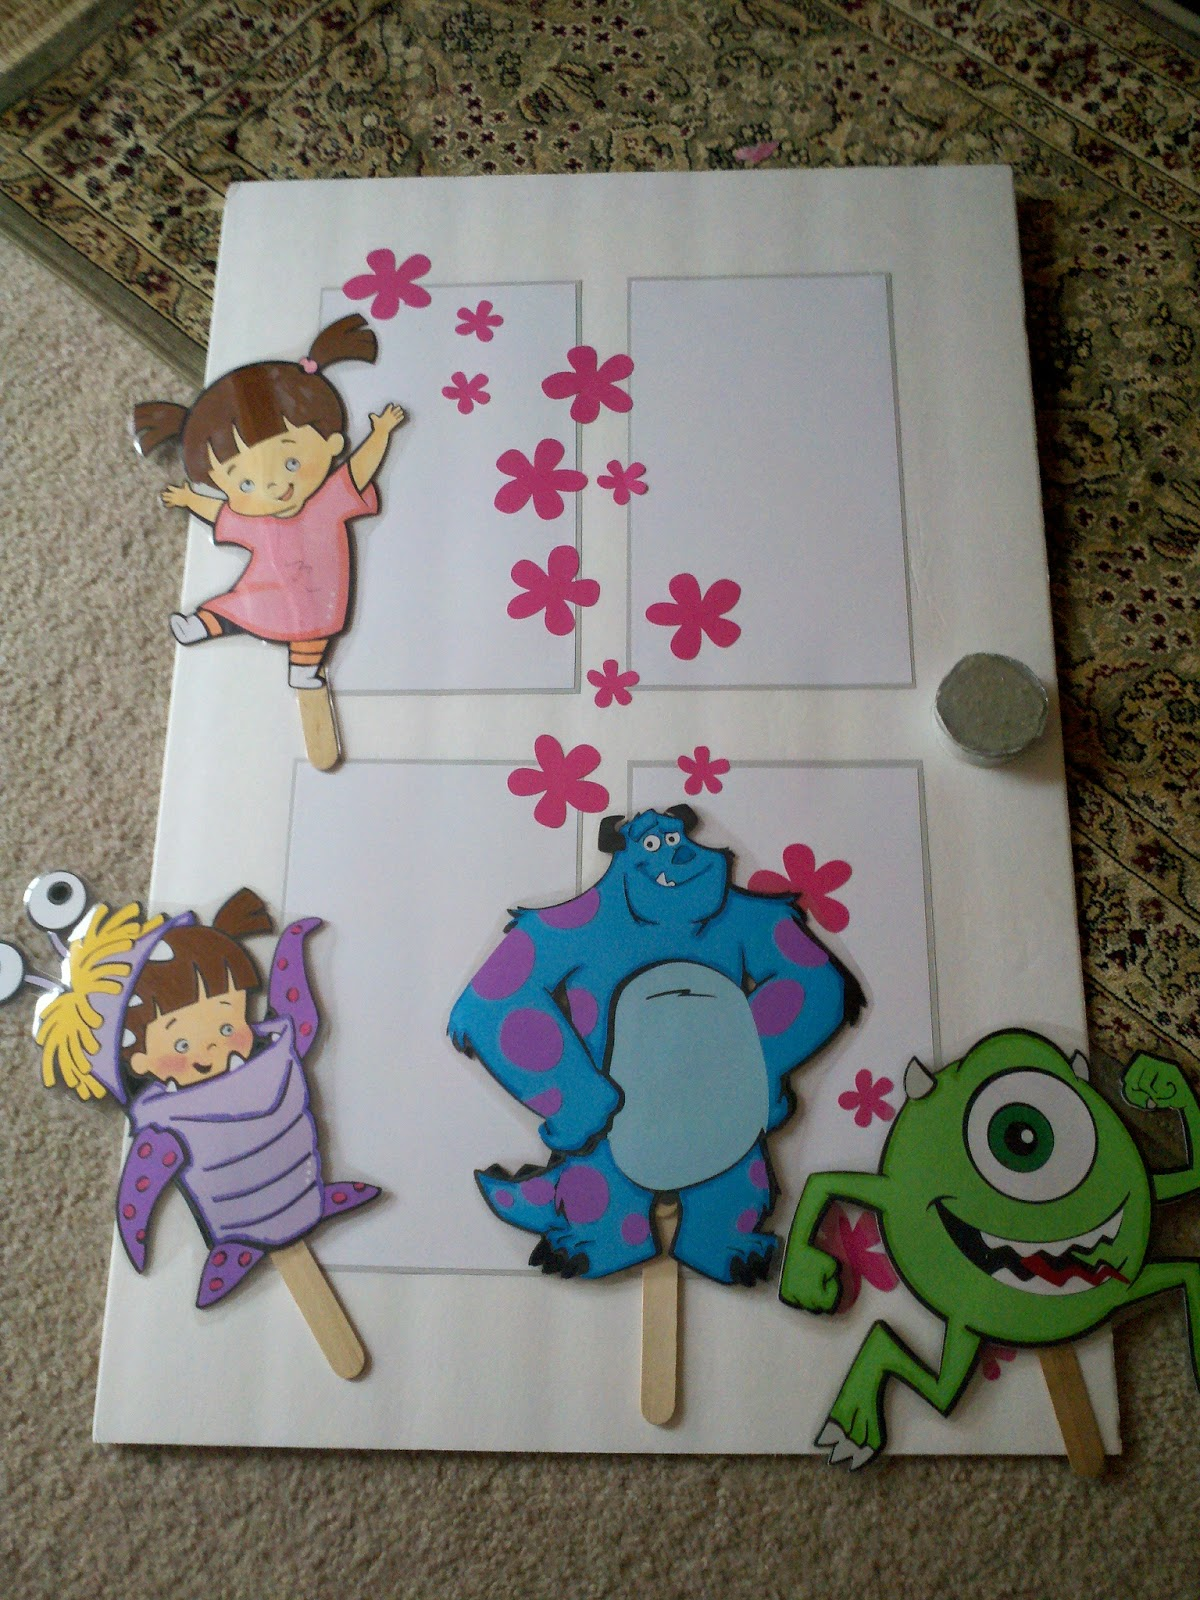 Monsters Inc Door Template - WeSharePics Robert Pattinson